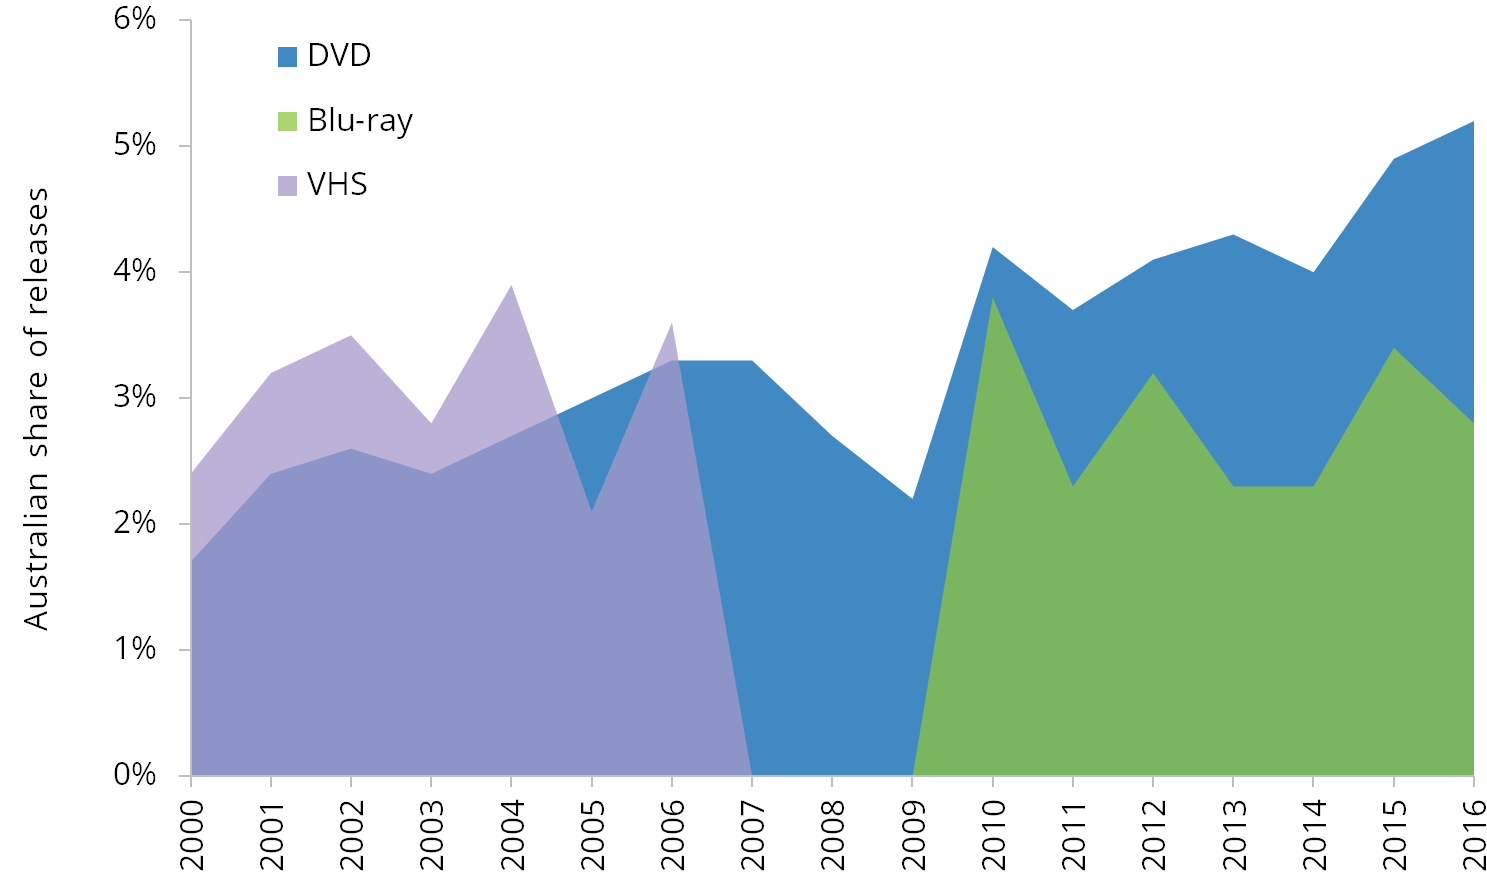 Graph: Australian share of video releases, 2000-2015. Table below has the data.